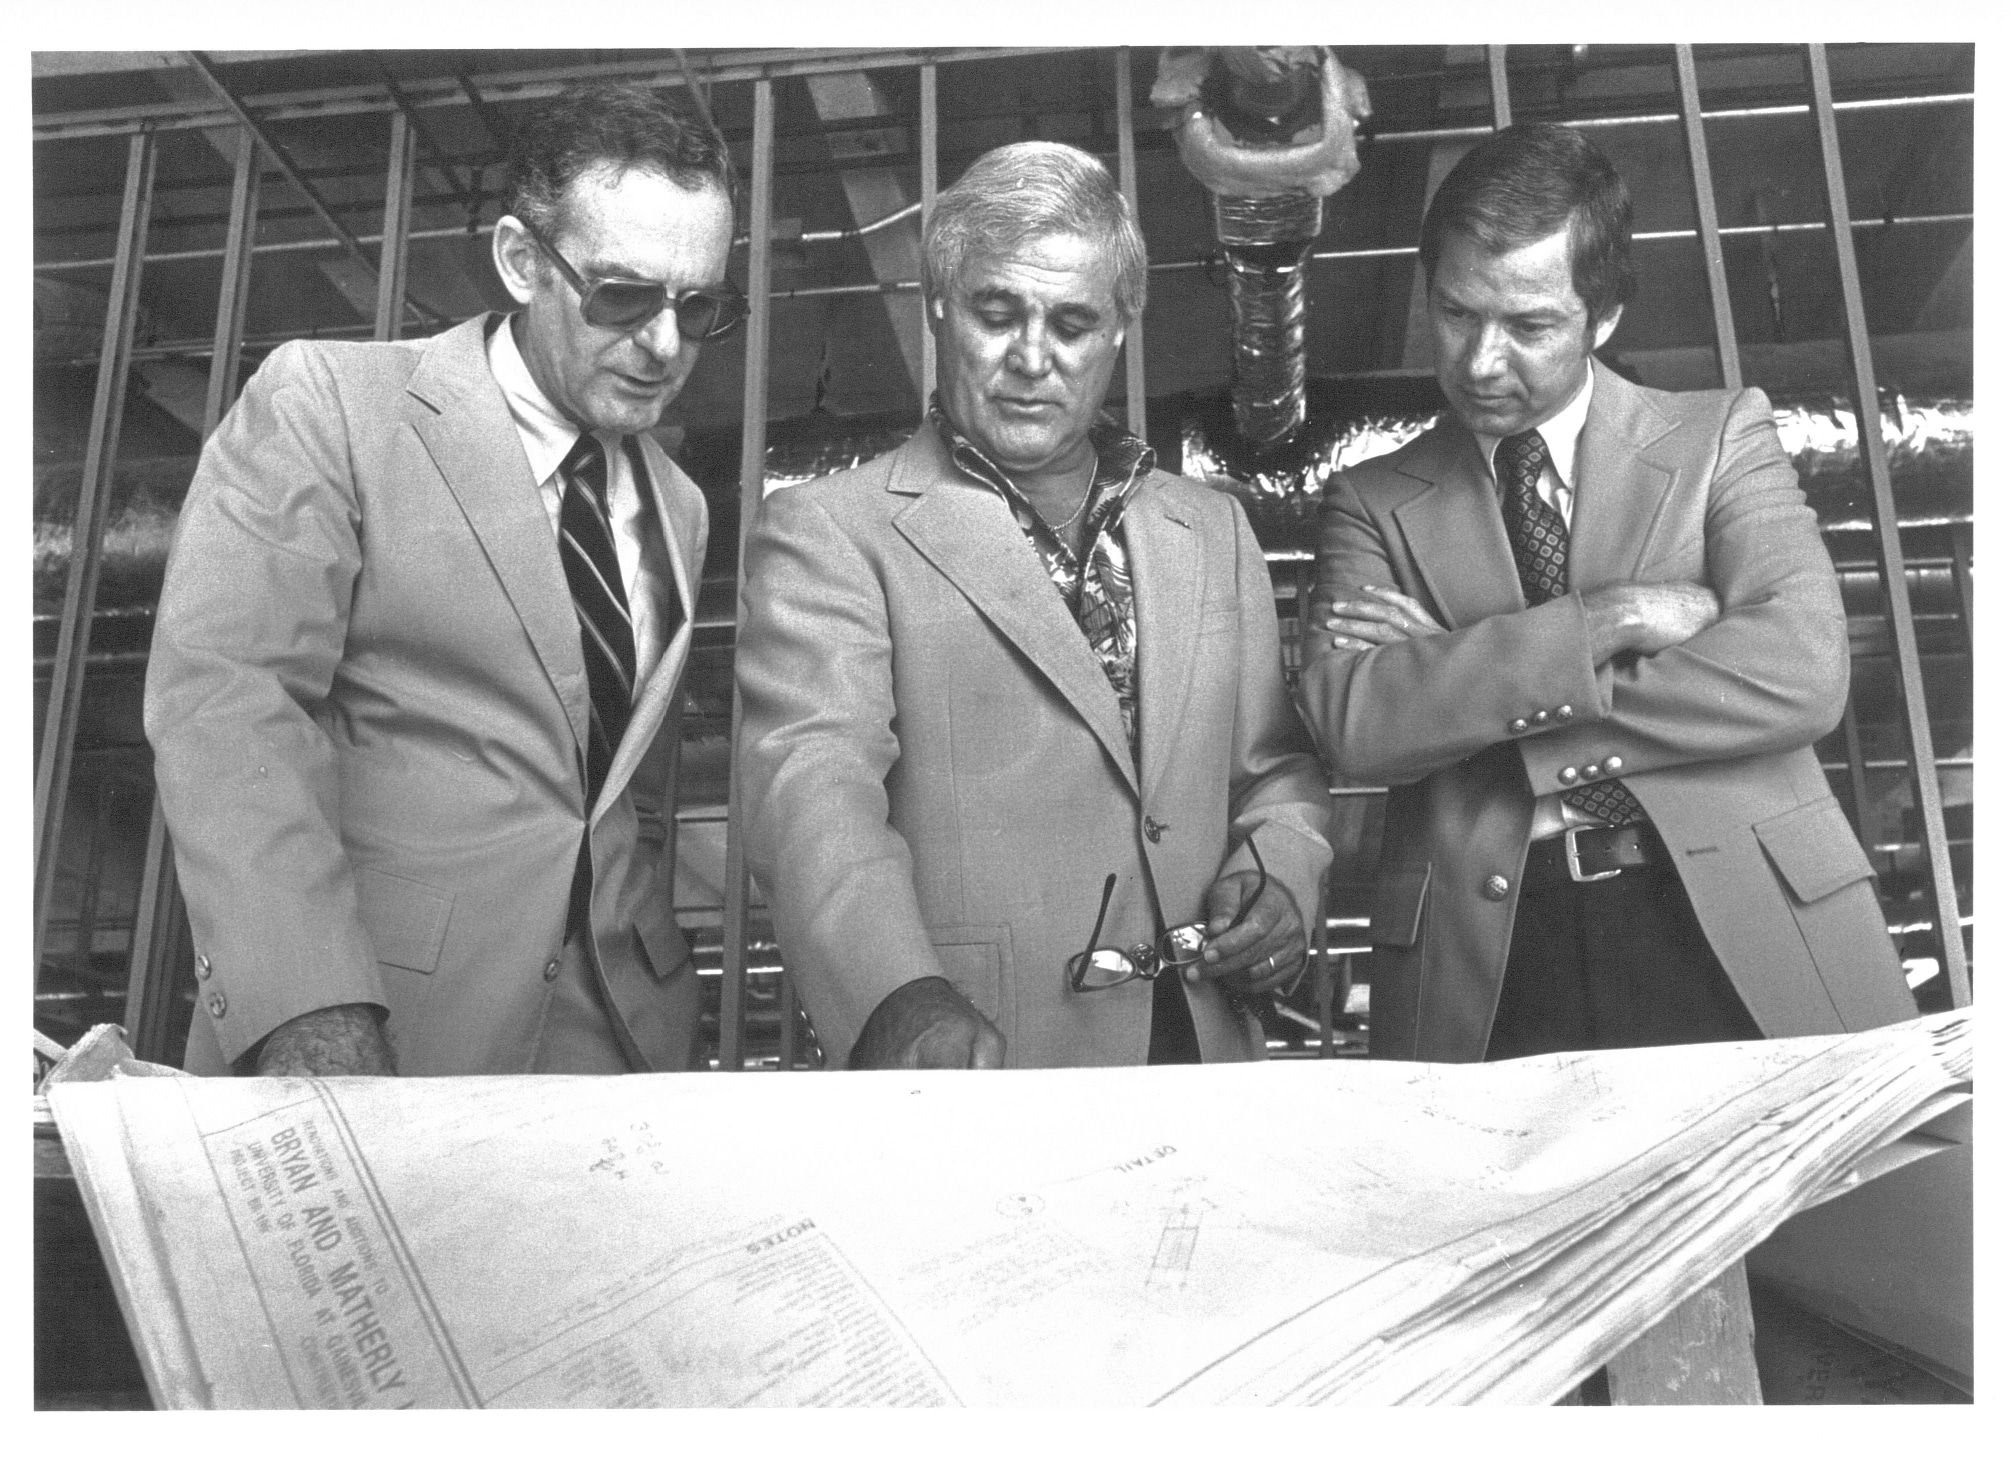 Hadley Schaefer, Robert Lanzillotti and John Simmons look down at plans for buildings on the Warrington College of Business campus.